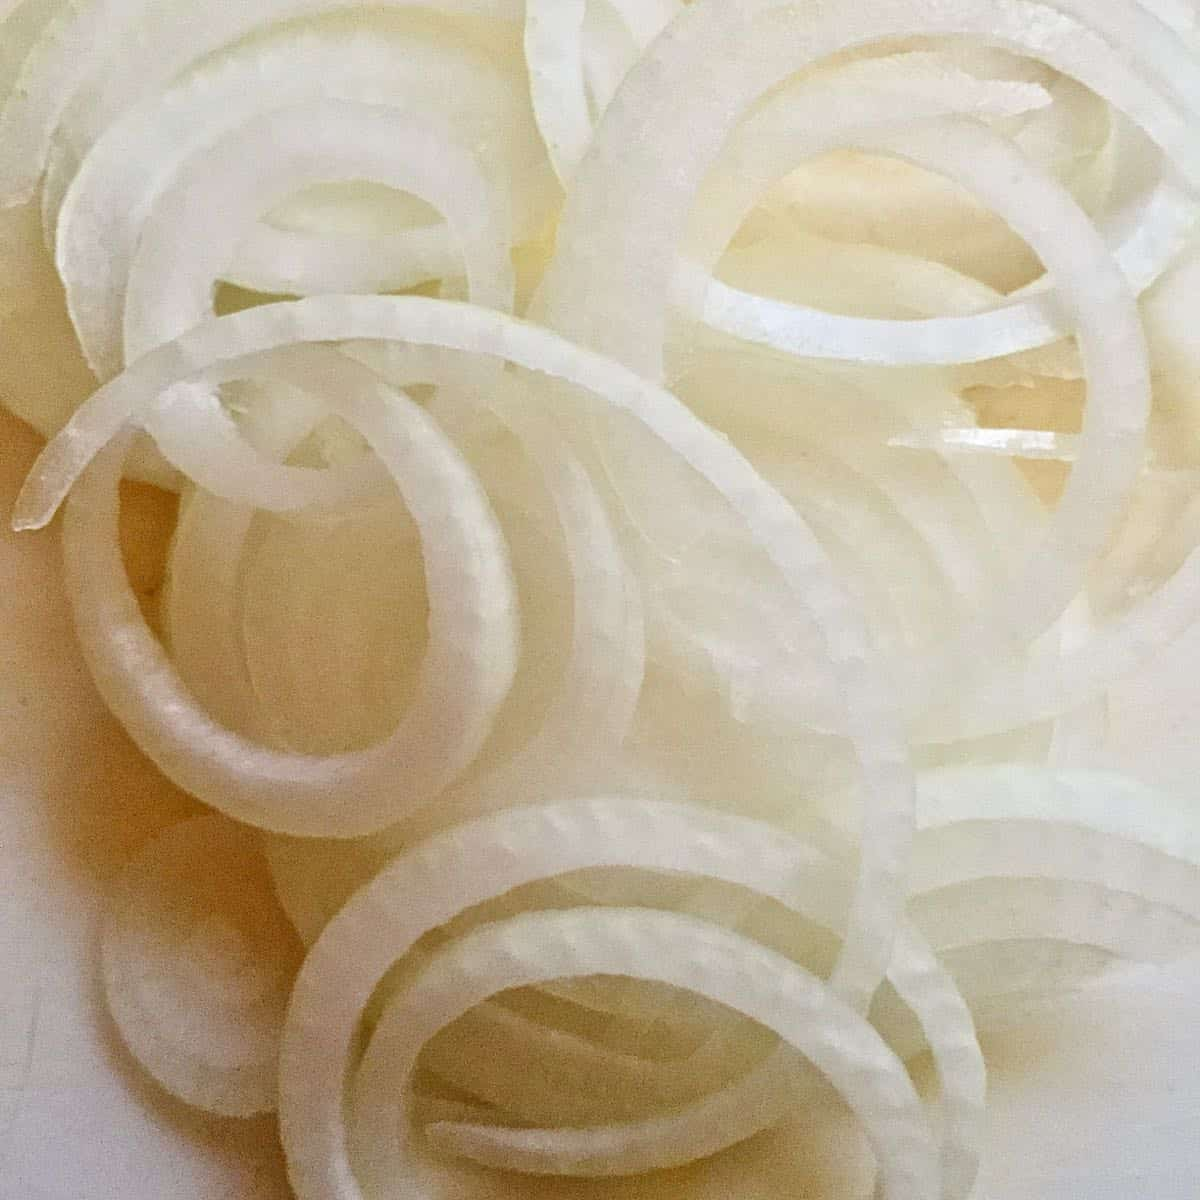 Sliced onion rings.